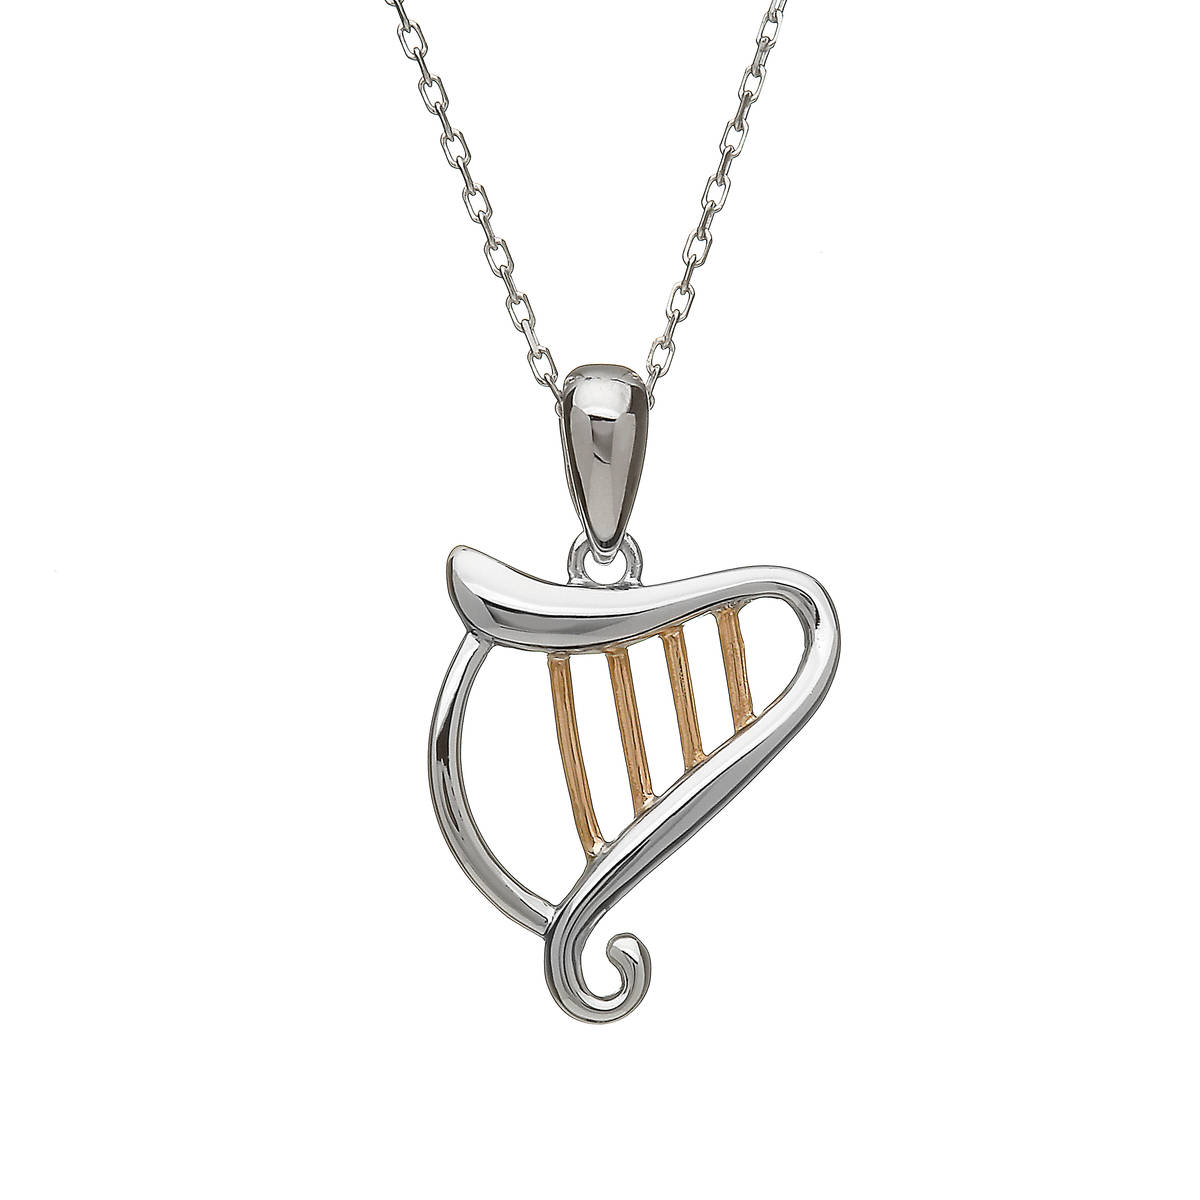 silver and rare Irish rose gold Celtic Harp pendant with strings made from gold.